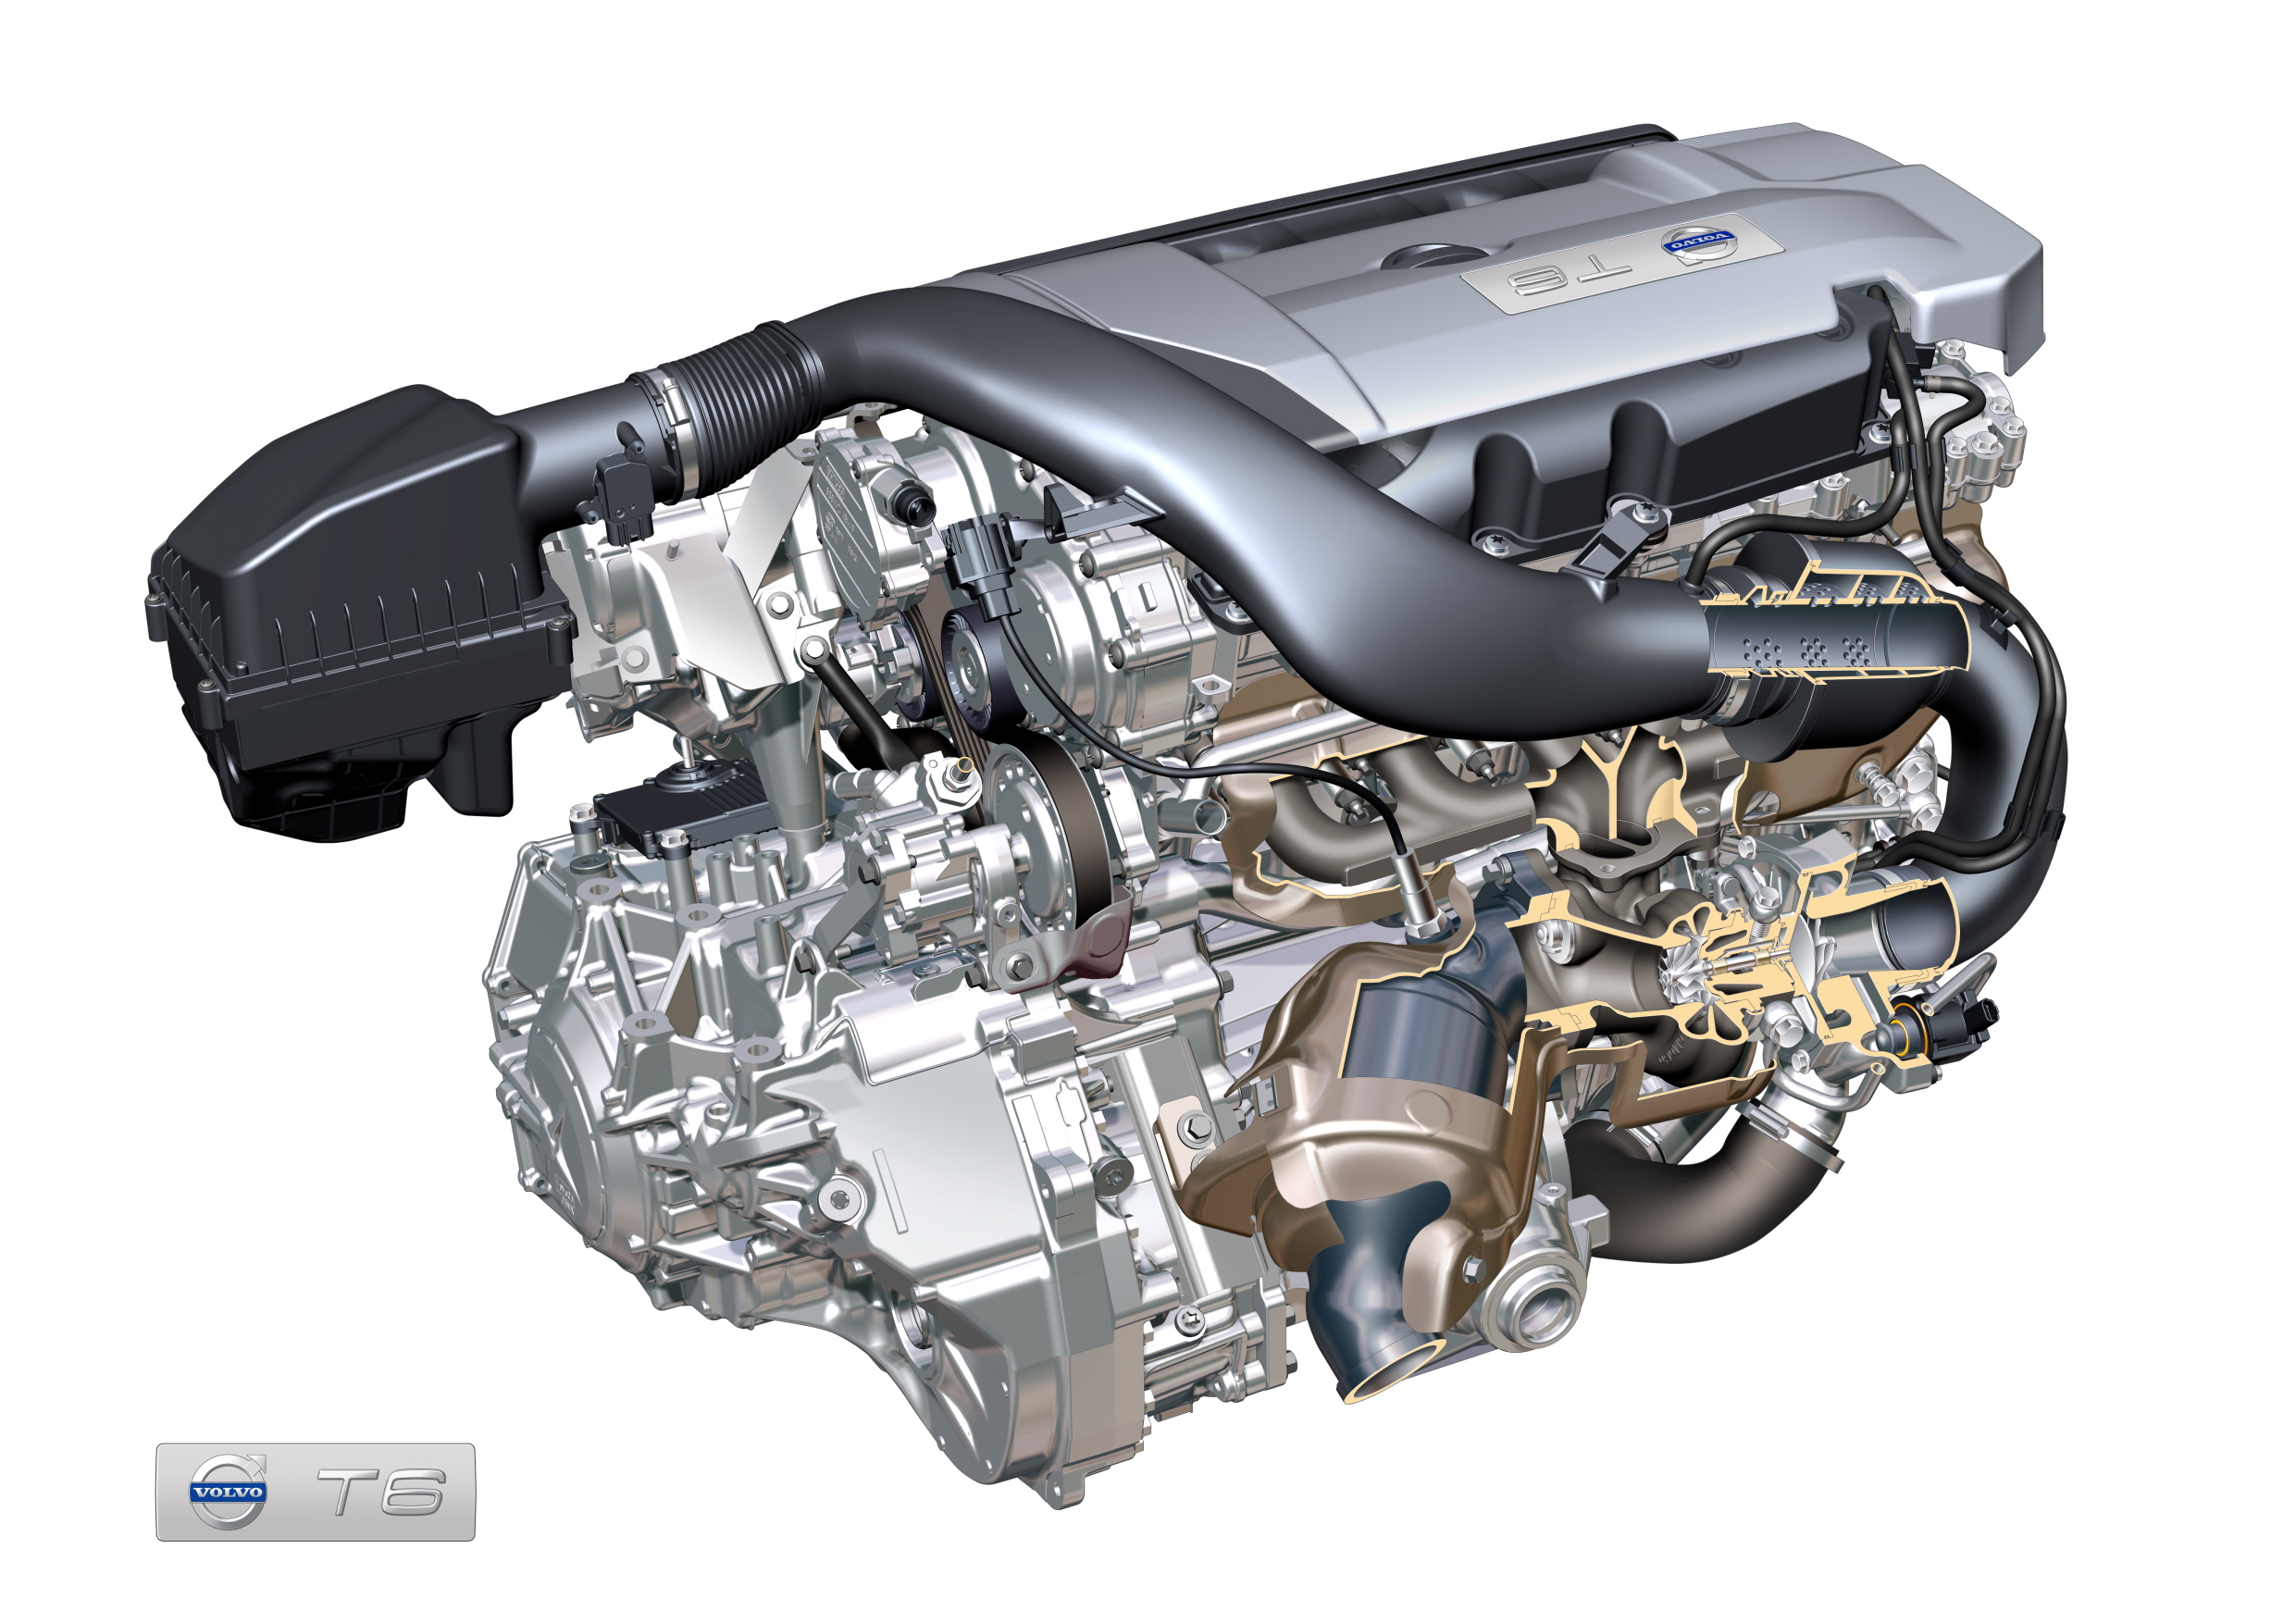 Volvo S60 engine #4